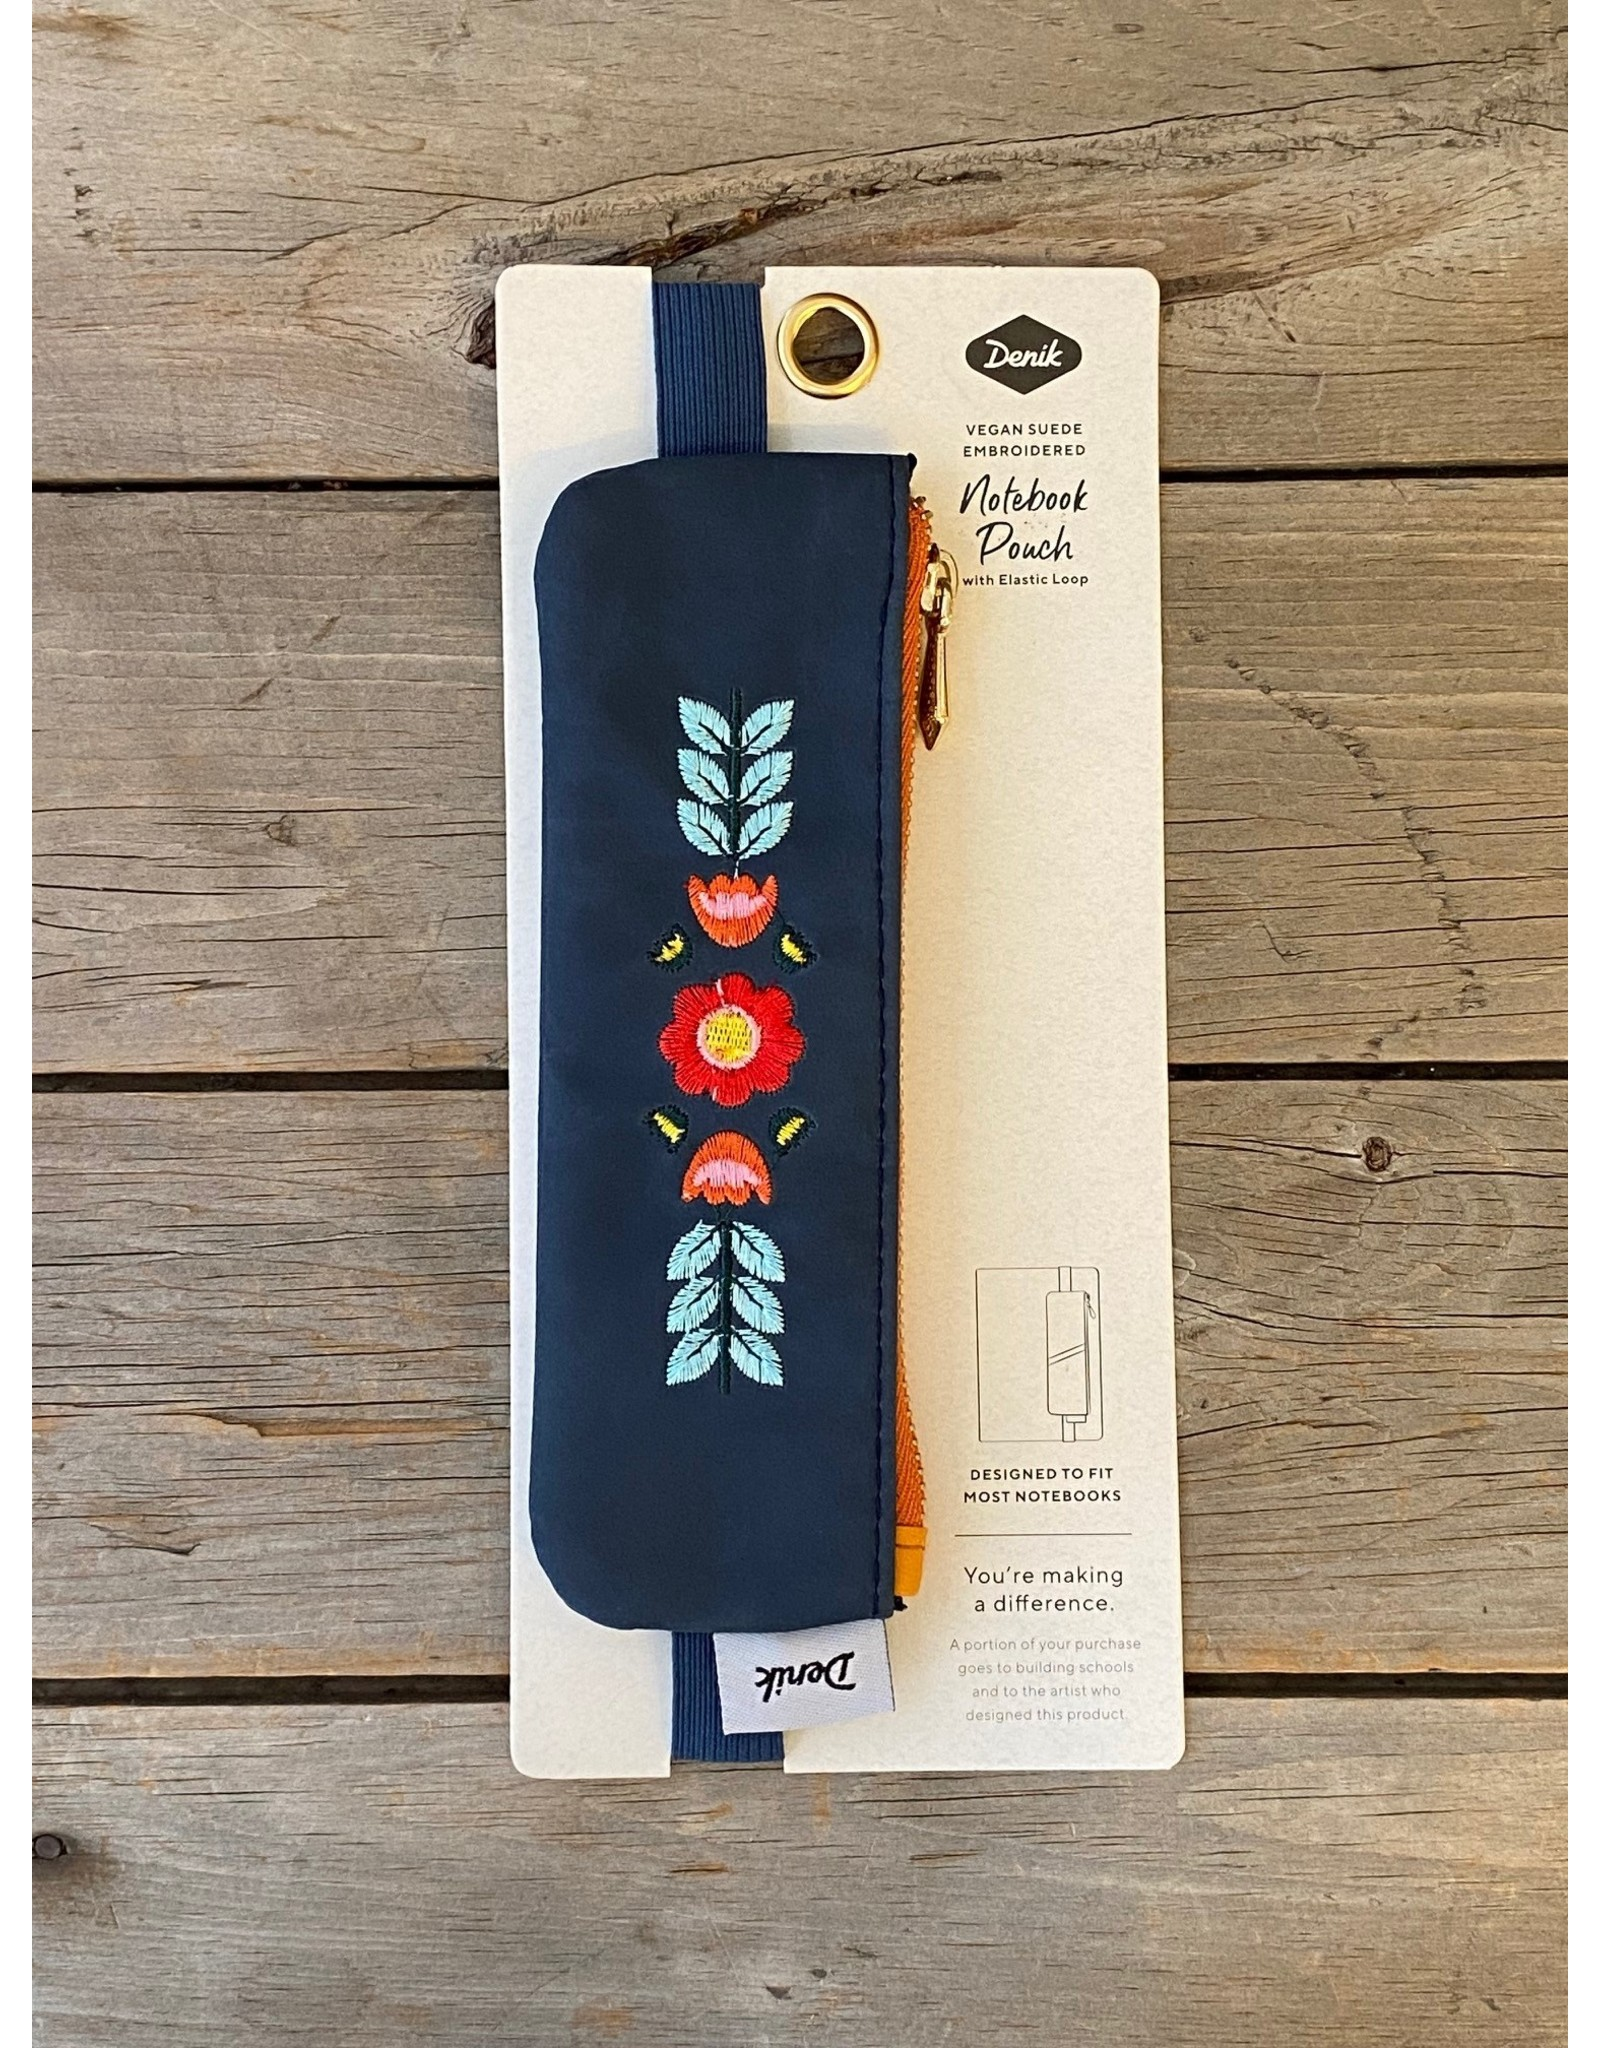 denik Blue Evelyn Embroidered Notebook Pouch